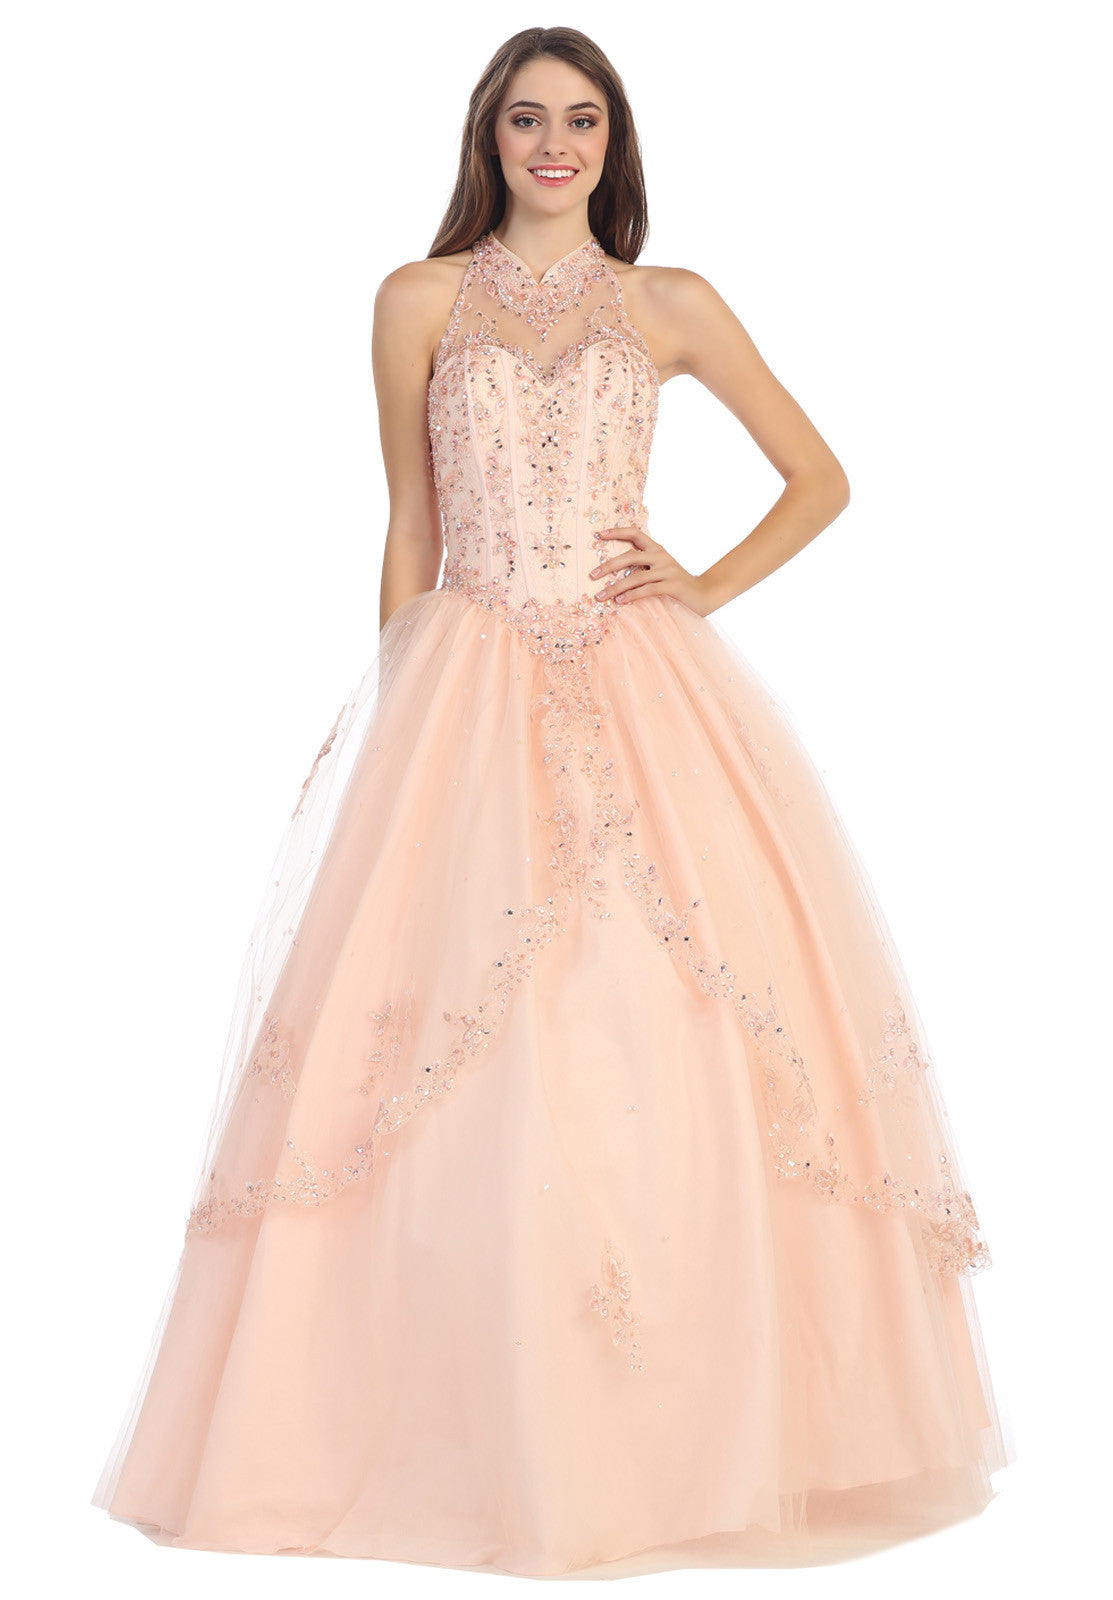 Halter Neck Corset Bodice Blush Princess Gown Poofy